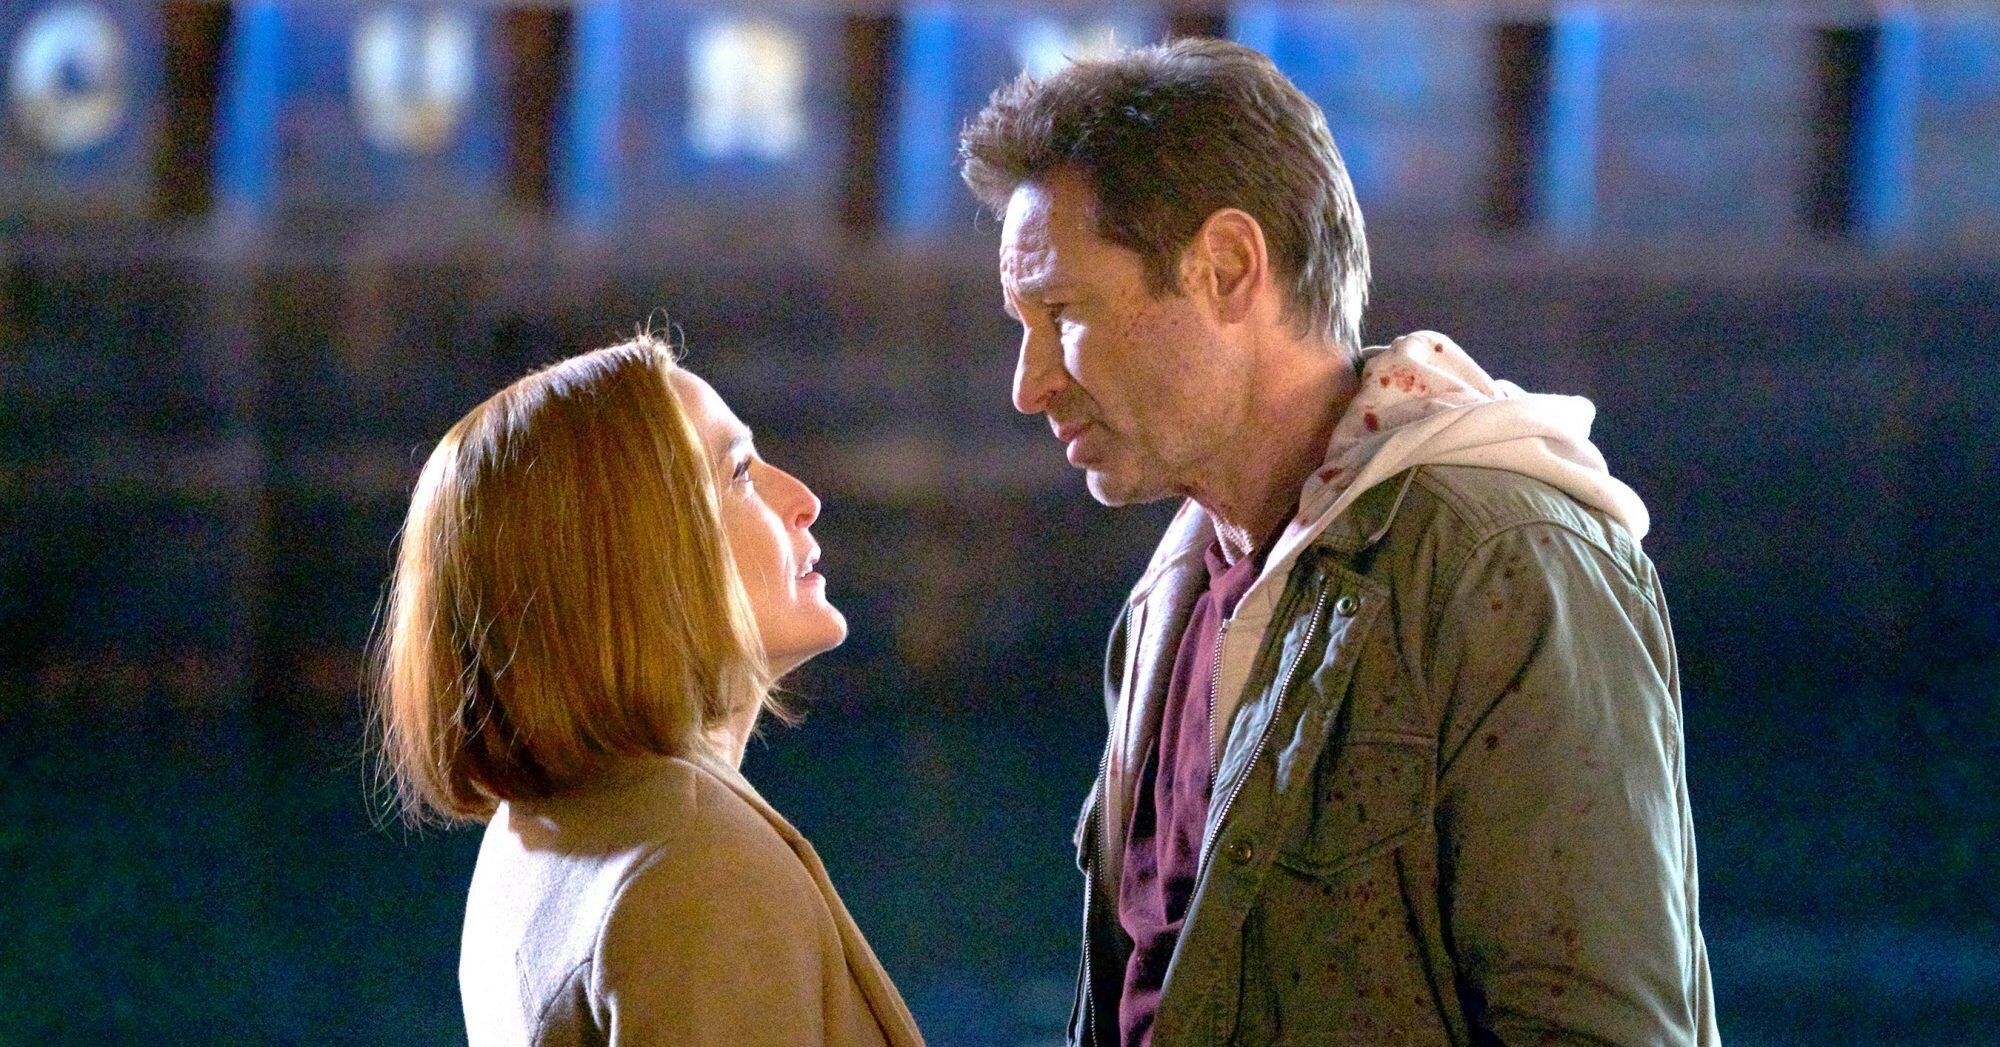 'X-Files' animated comedy spin-off in development at Fox